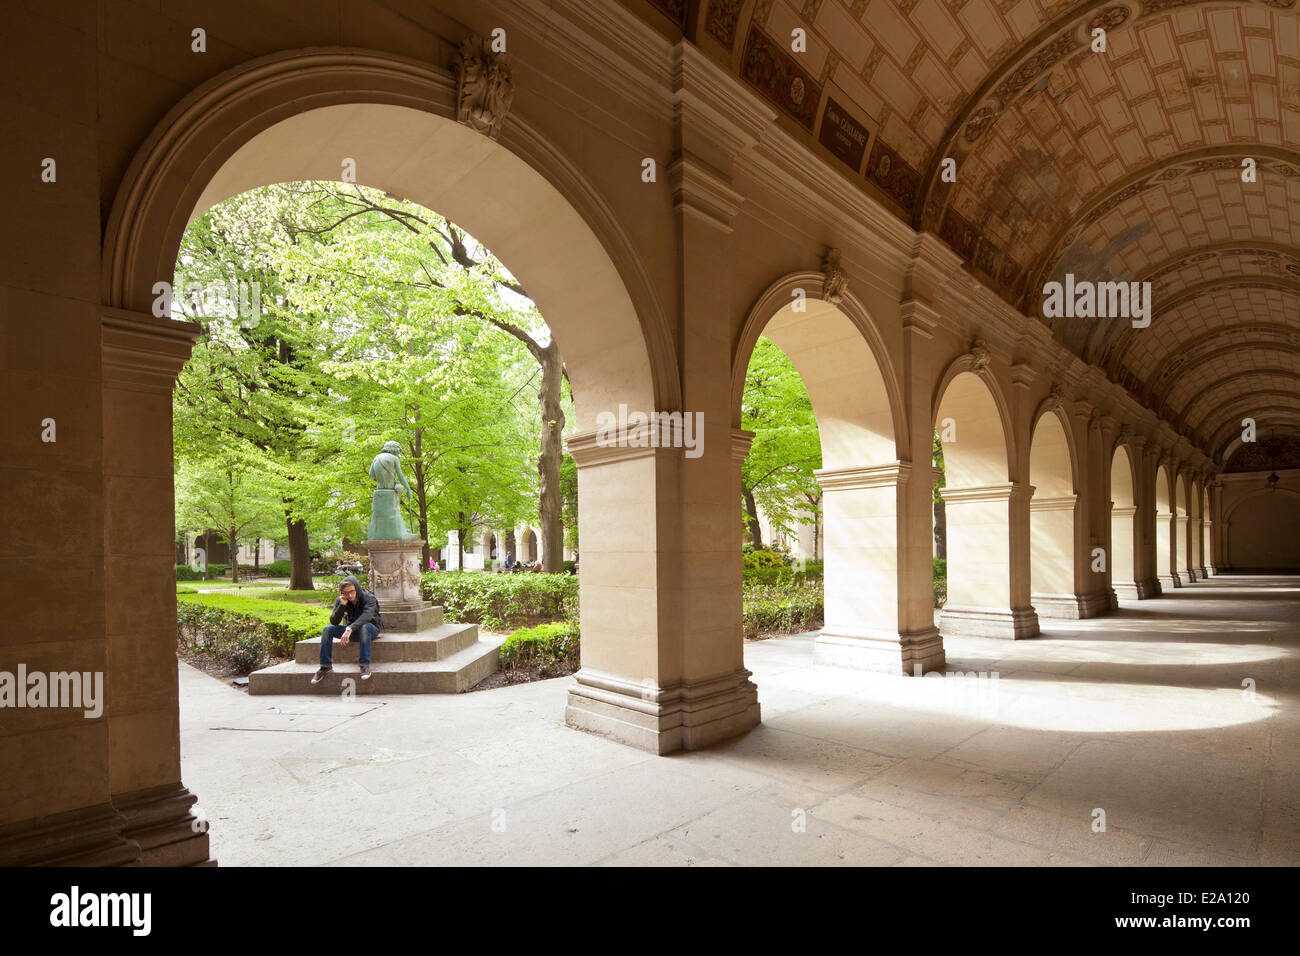 France, Rhone, Lyon, historical site listed as World Heritage by UNESCO, Palais Saint Pierre, Musee des Beaux Arts Stock Photo